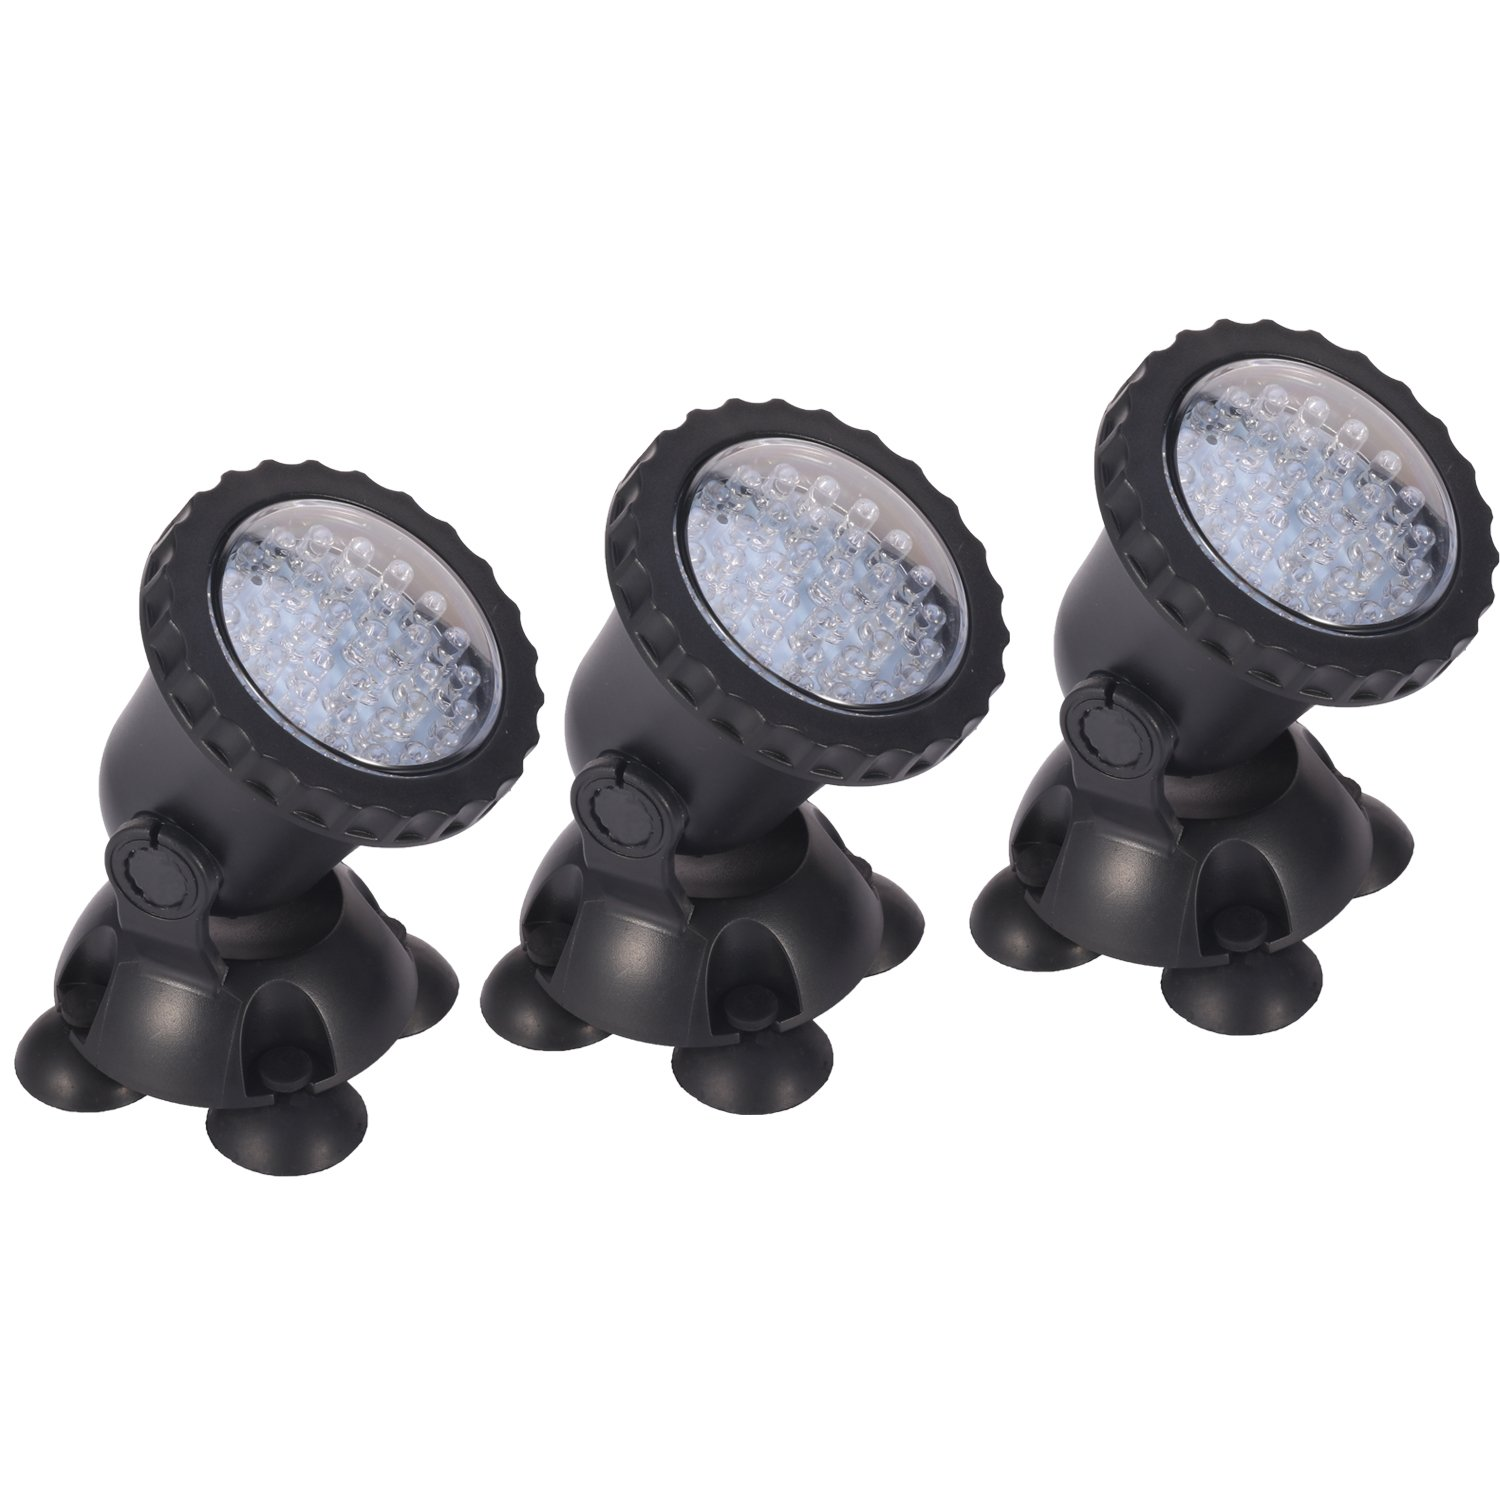 Remote control Submersible Lamp 3 SetWaterproof Aquarium Spotlight Multi-color Decoration Landscape lamp